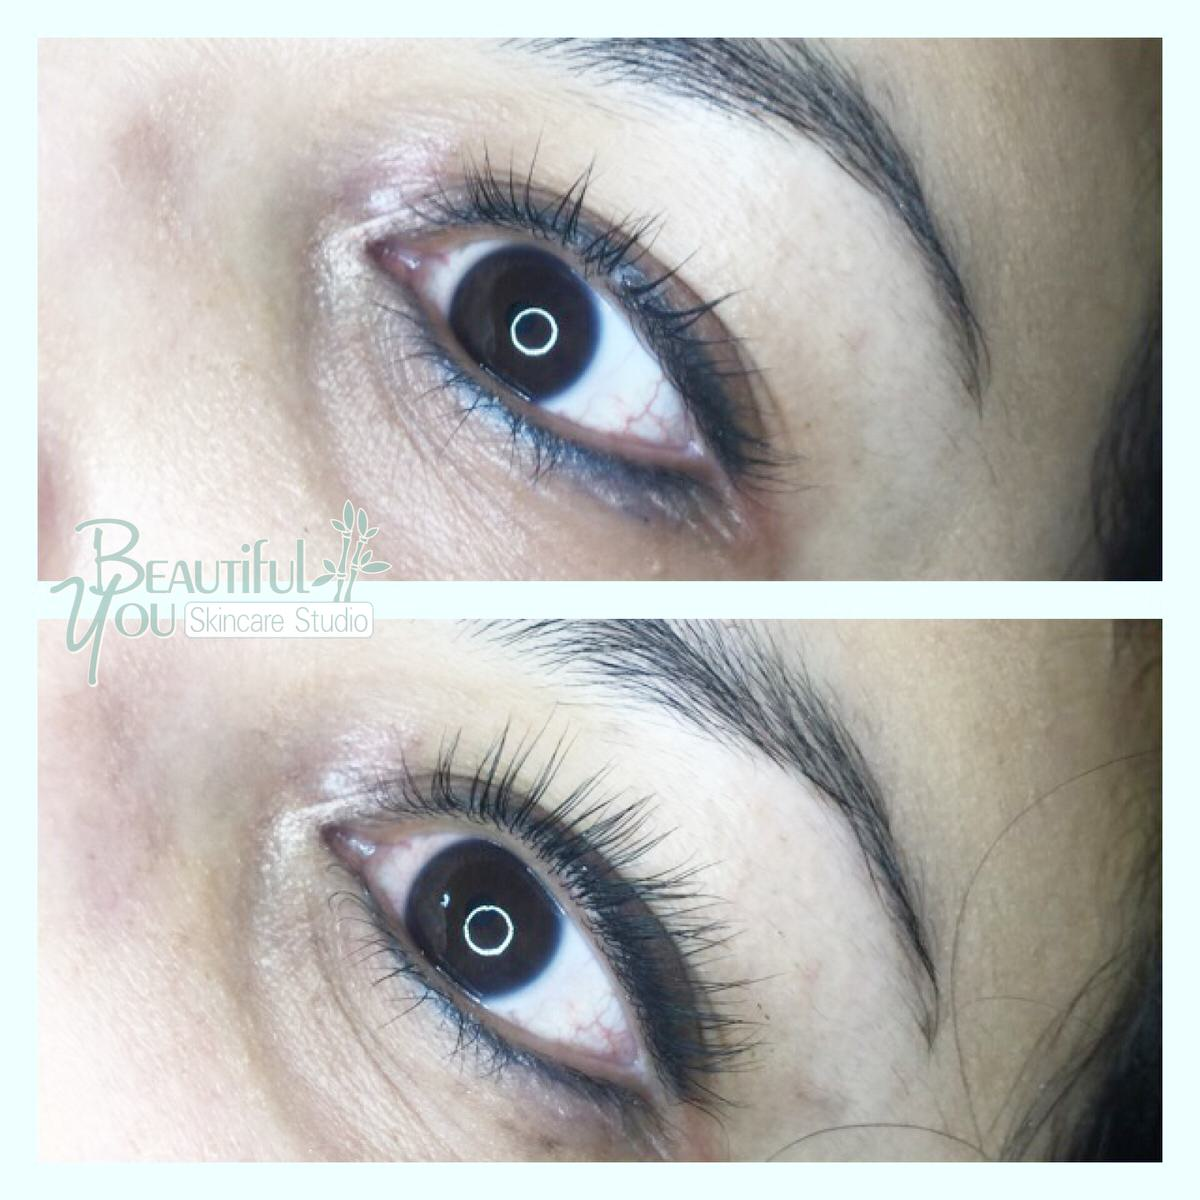 Beautiful-You-Skincare-Studio-Lash-Before-and-After17.jpeg